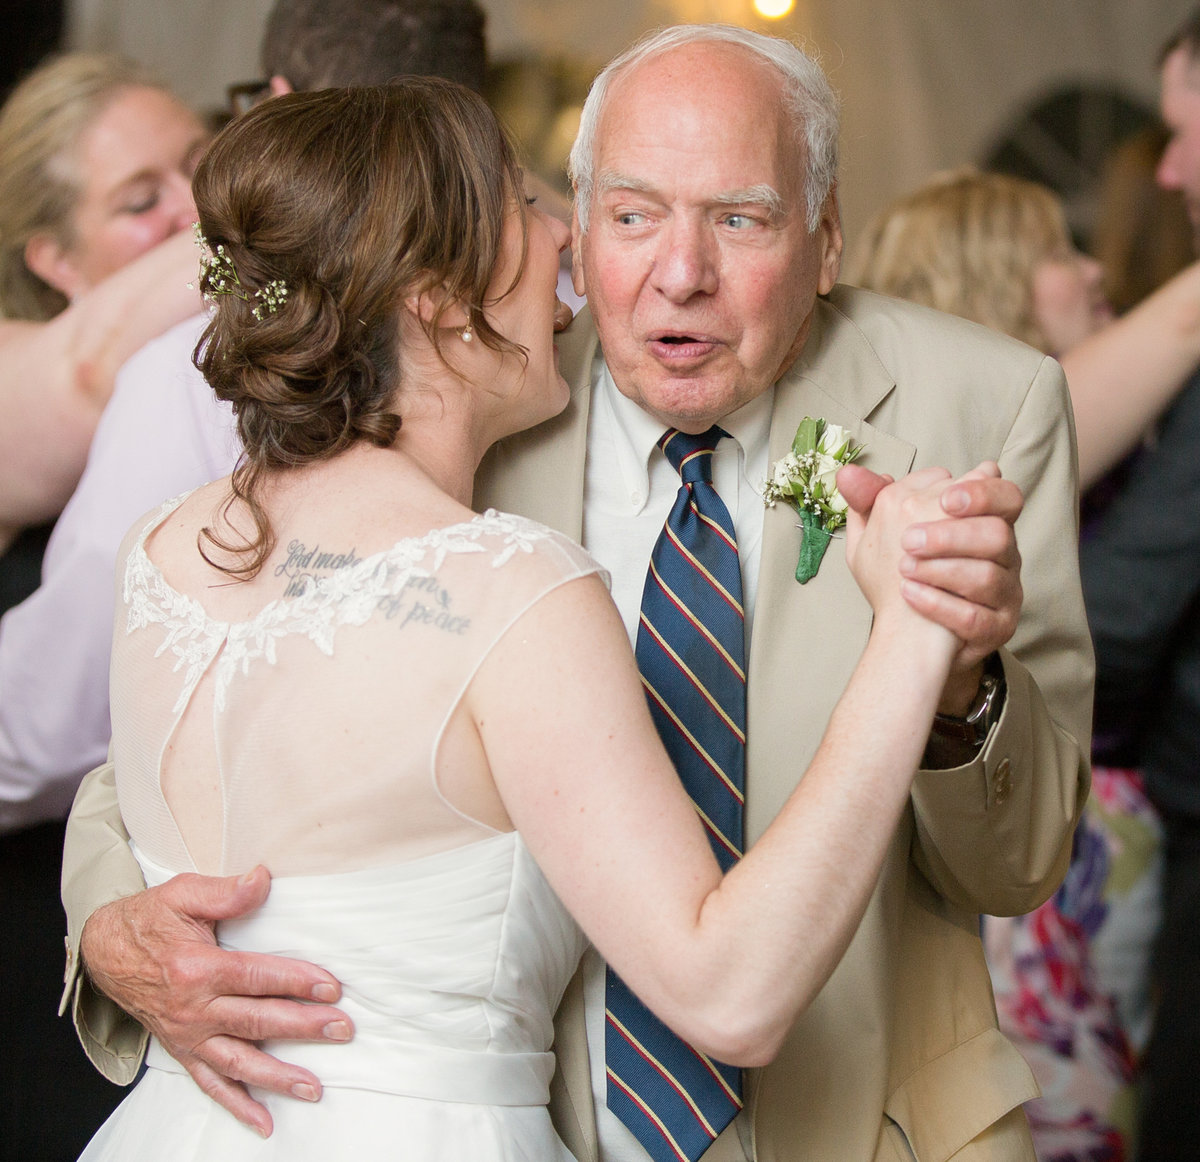 Bride is laughing while dancing with her father in law at National Aviary wedding reception